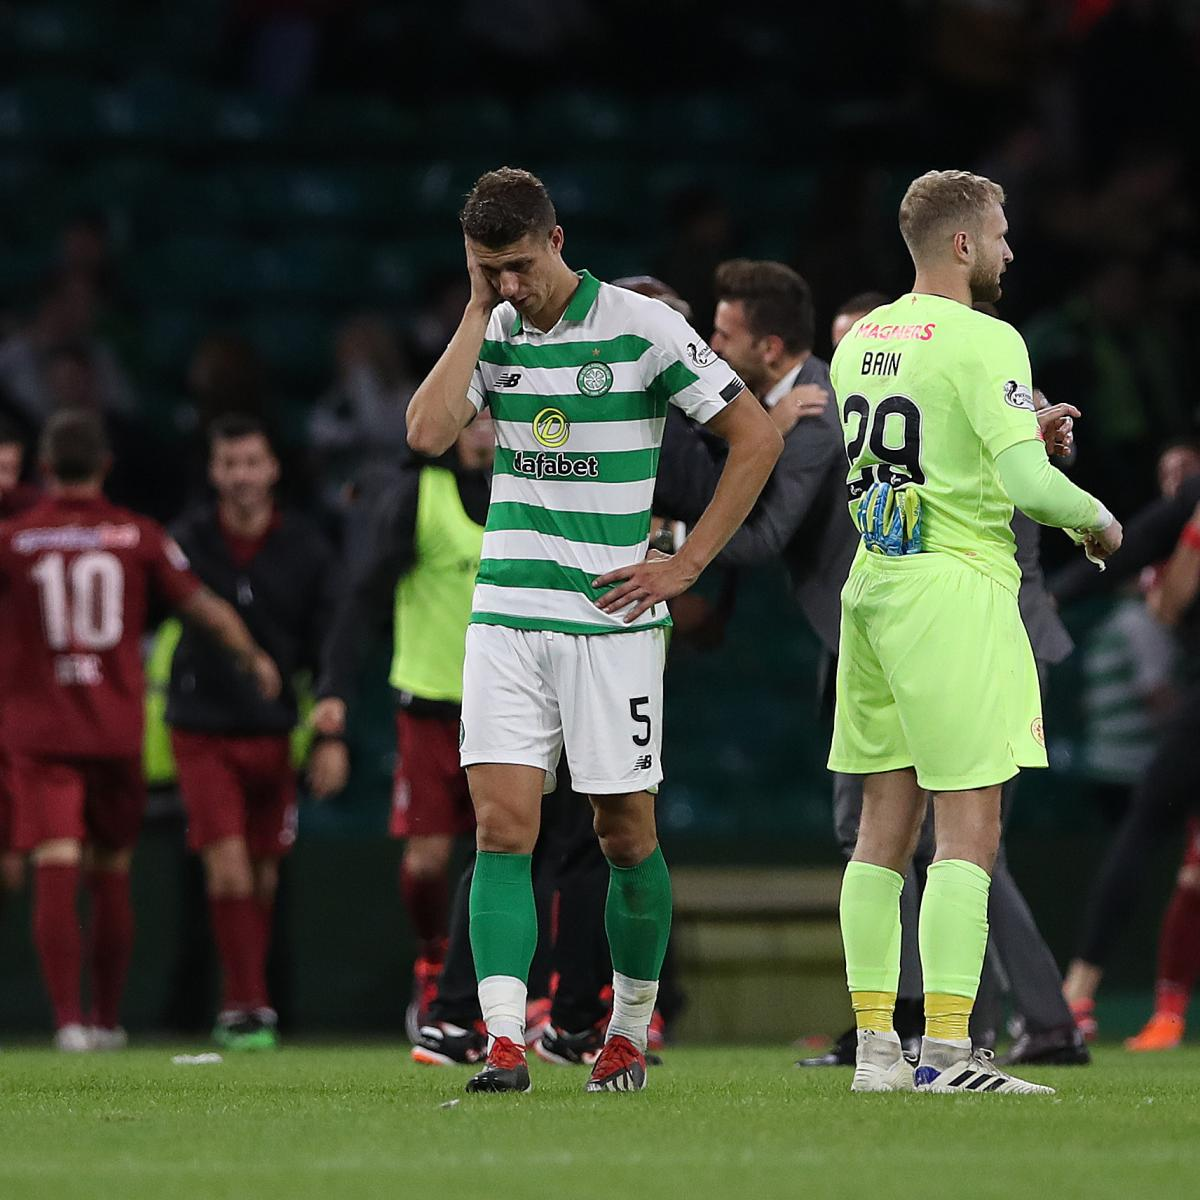 Champions League Qualifiers 2019: Champions League Results 2019: Qualified Teams And Play